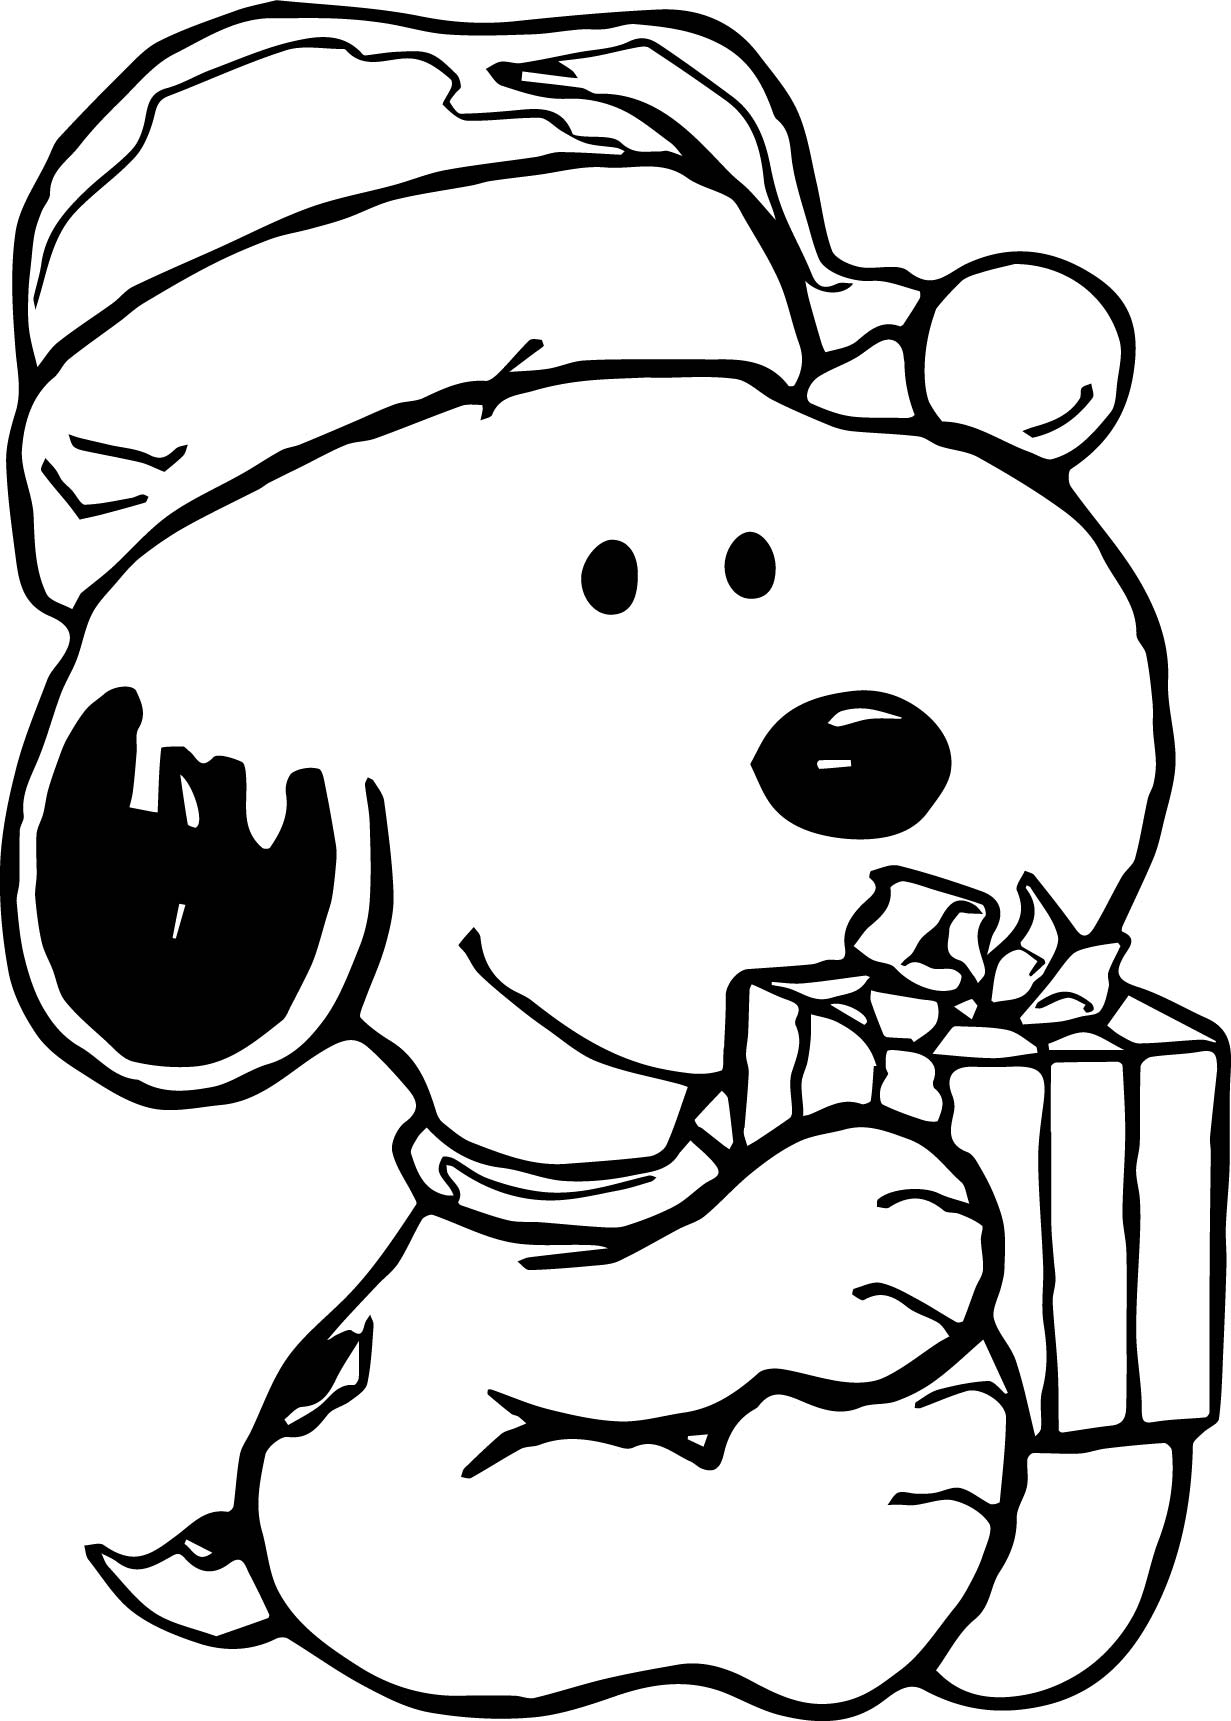 Baby snoopy christmas coloring page for Snoopy coloring page